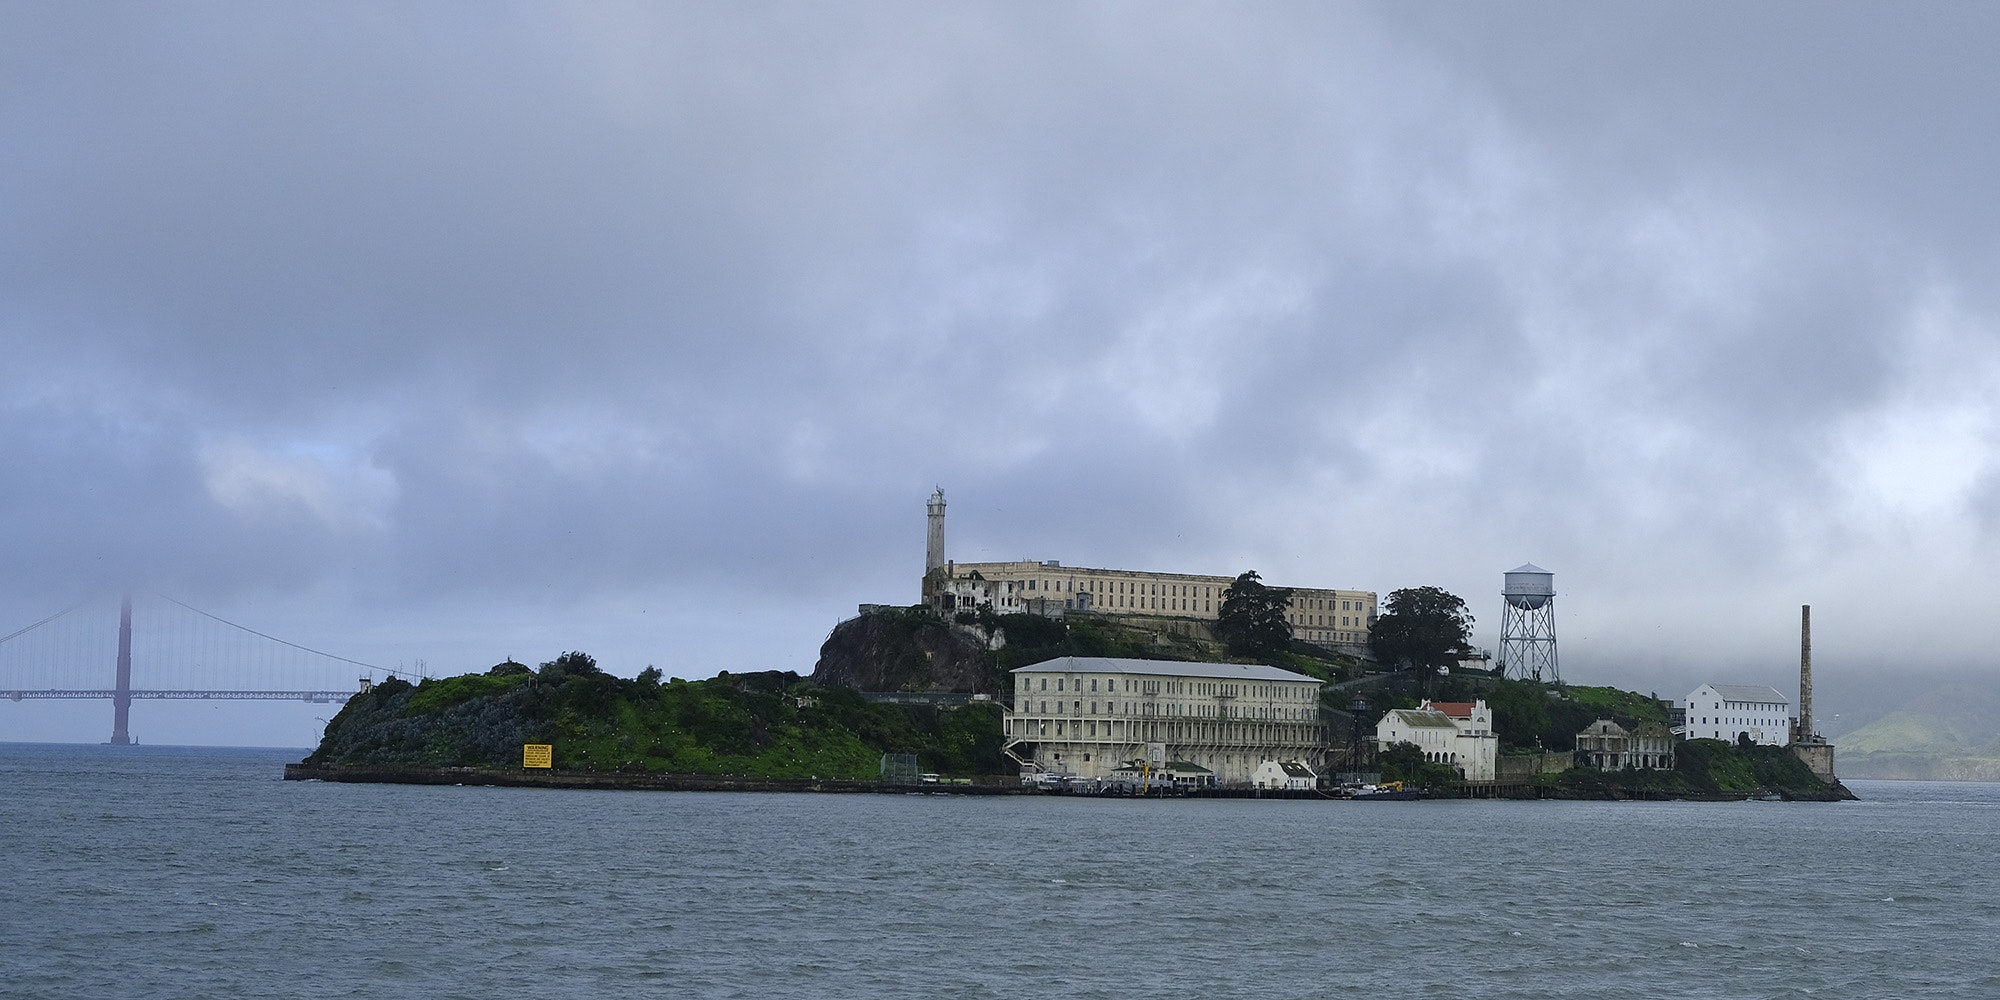 Hidden Tunnels and Civil War–Era Buildings Found Below Alcatraz Prison